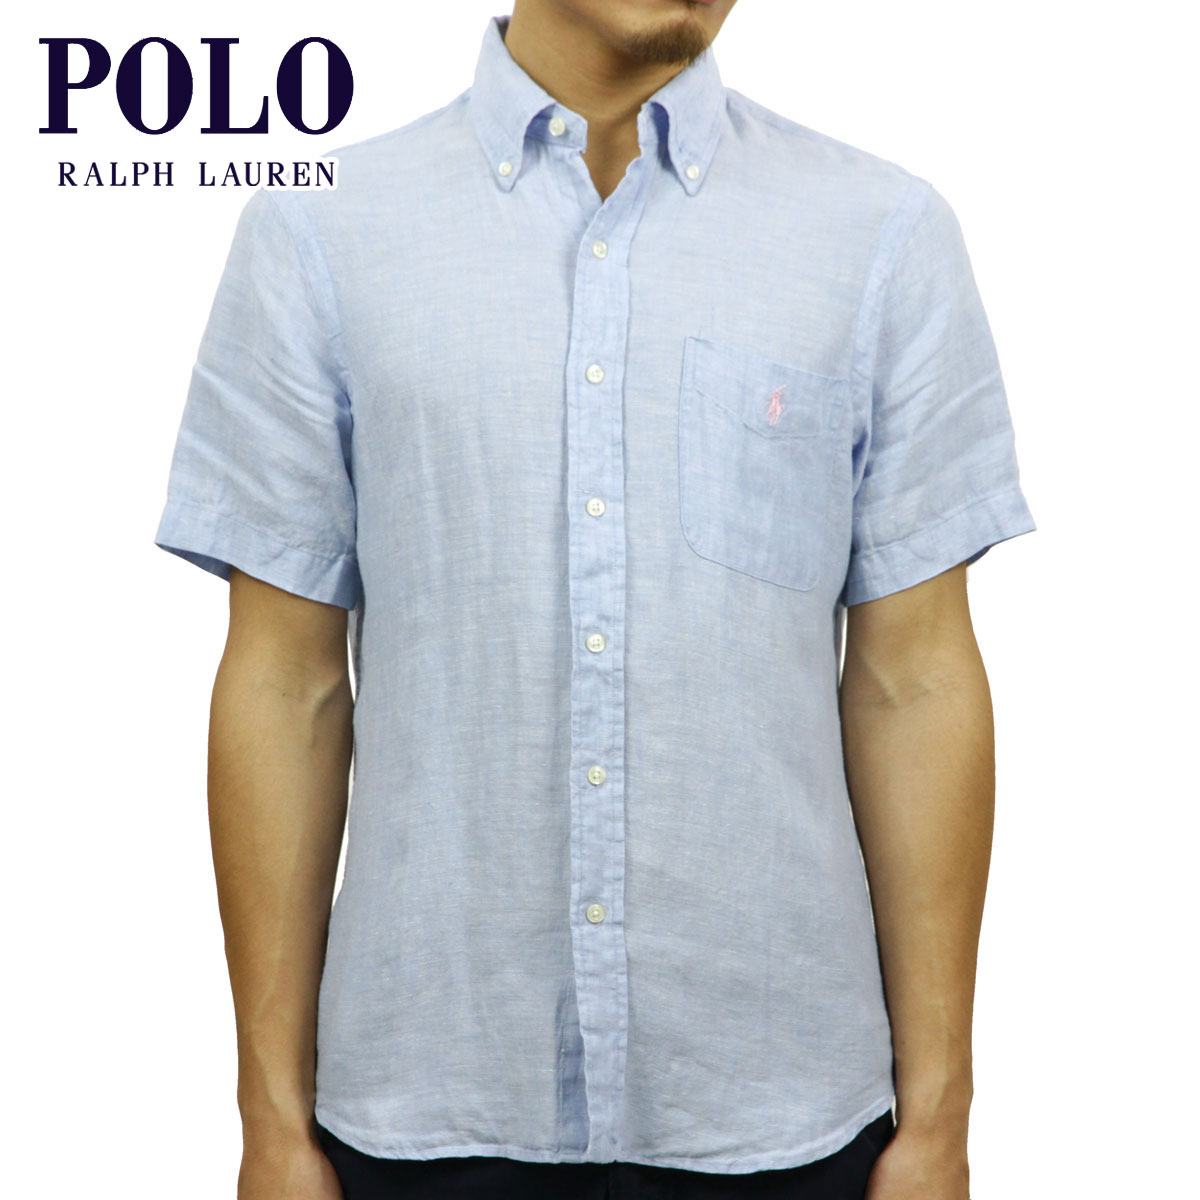 c4fedeab Polo Ralph Lauren POLO RALPH LAUREN regular article men short-sleeved shirt  HEMP BUTTON DOWN ...